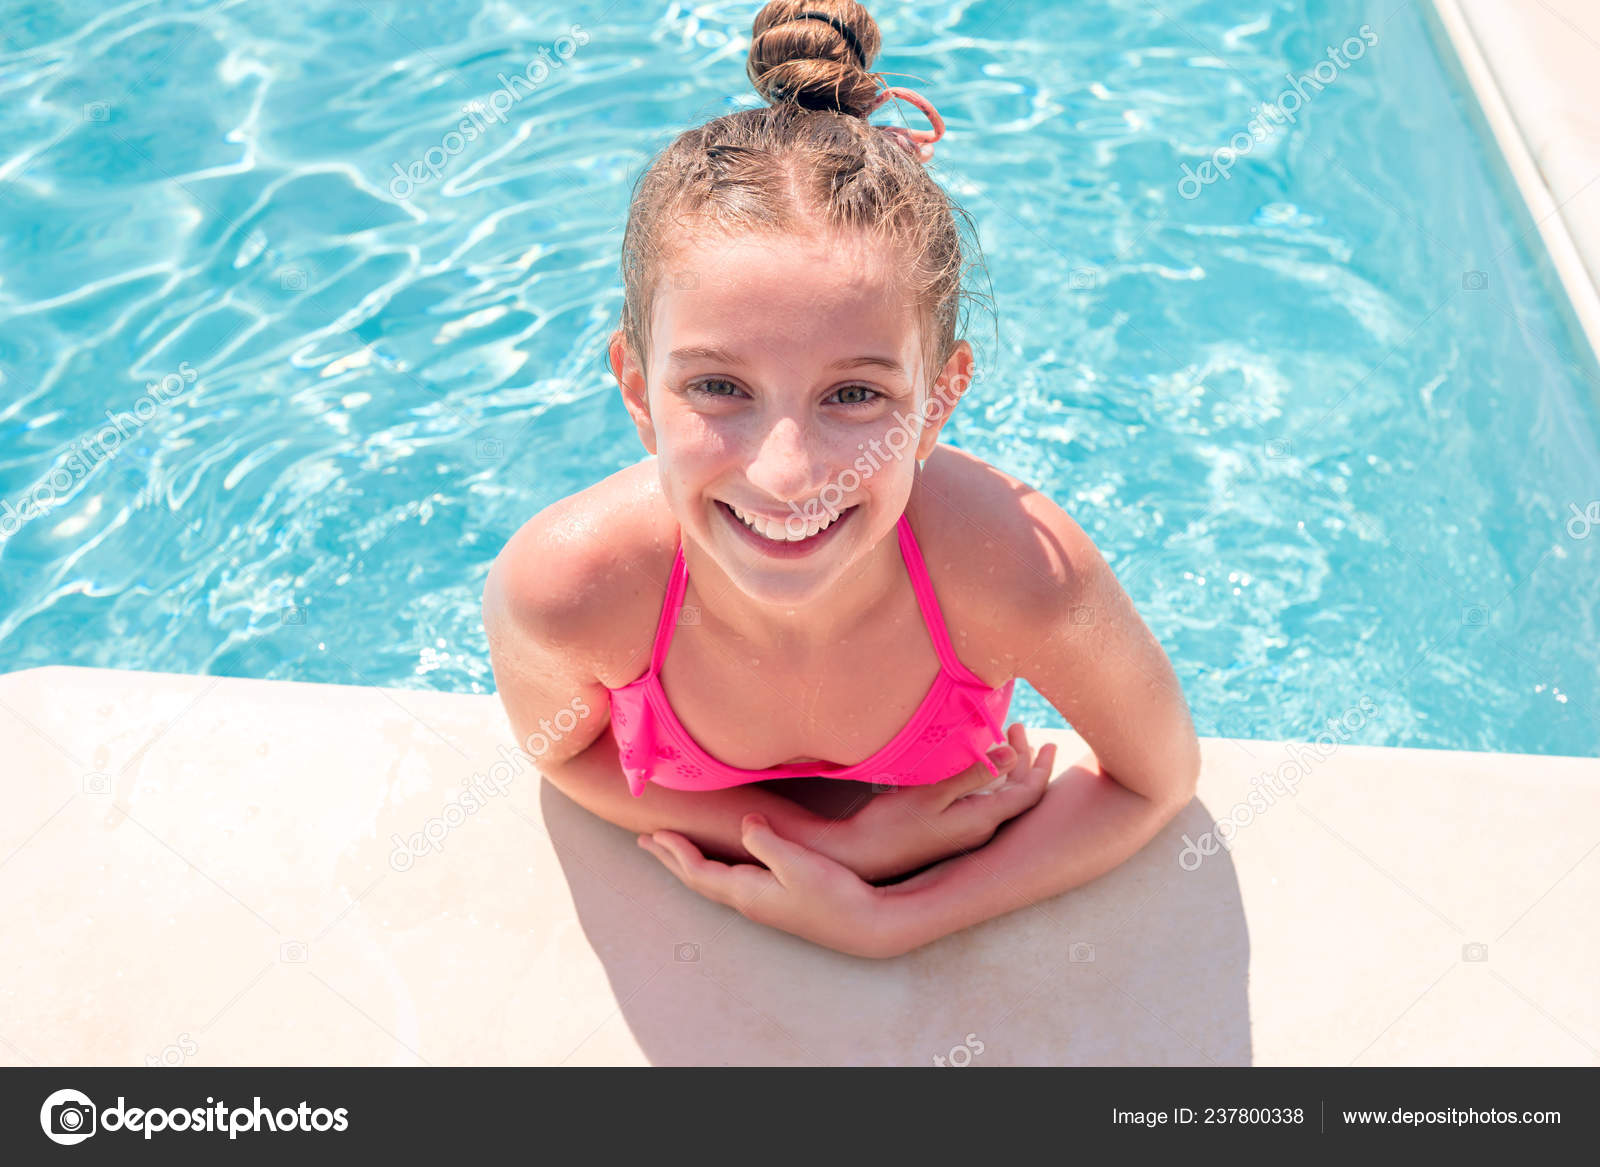 Teen girl in swimming pool squinting her eyes — Stock Photo